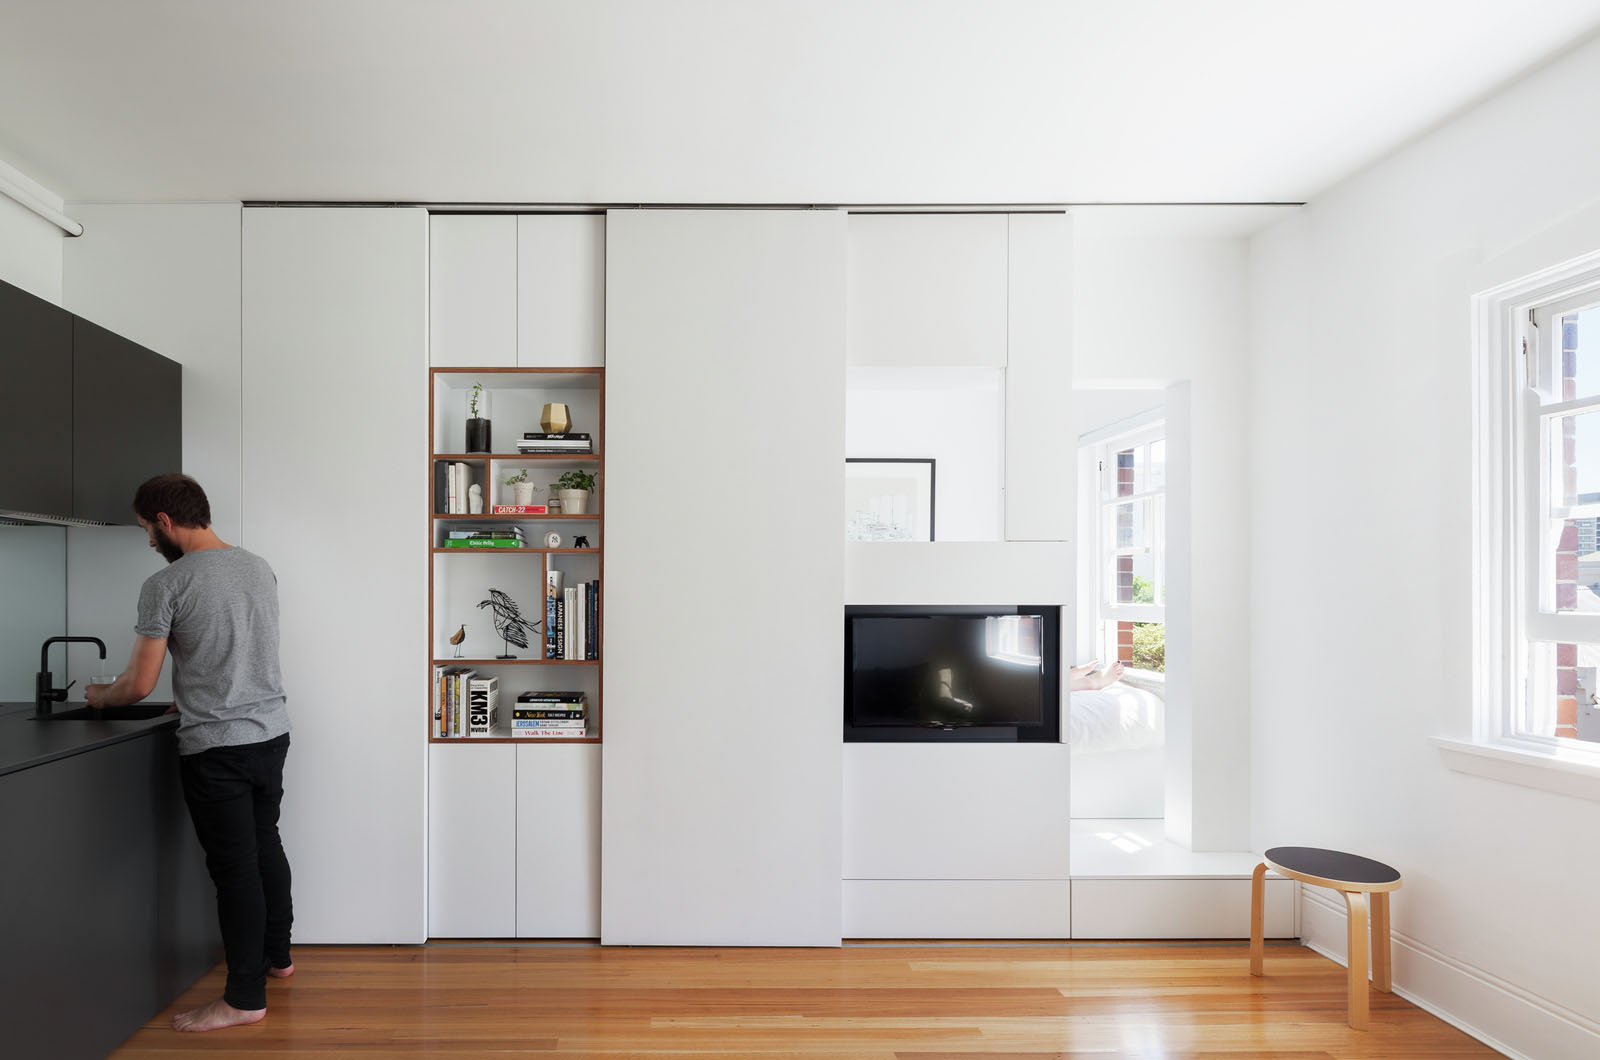 Studio Apartment Sydney minimalist inner city micro apartment with smart functional design